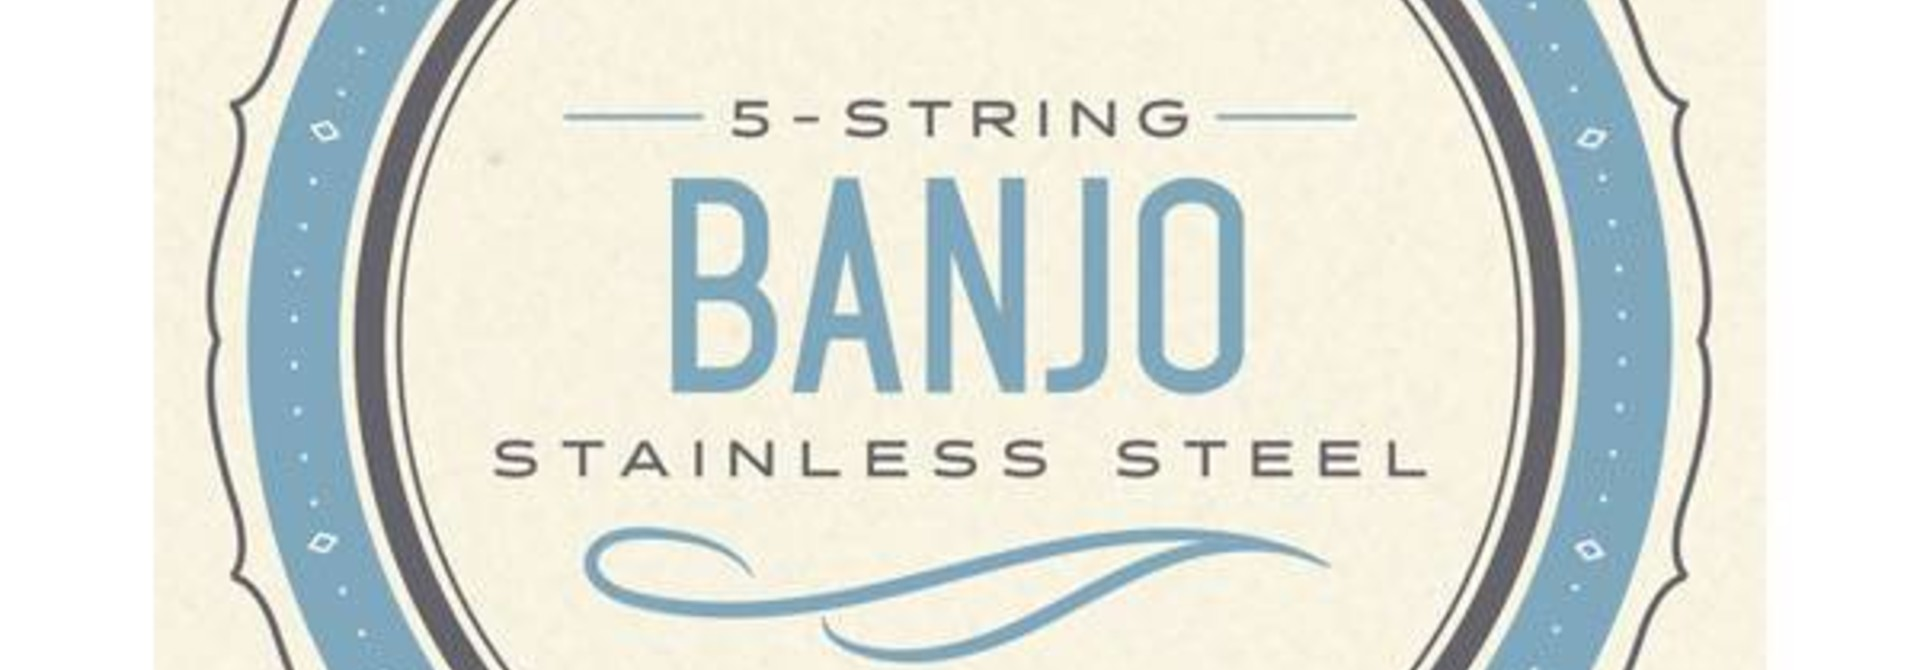 EJS60 5-String Banjo, Stainless Steel, Light, 10-20